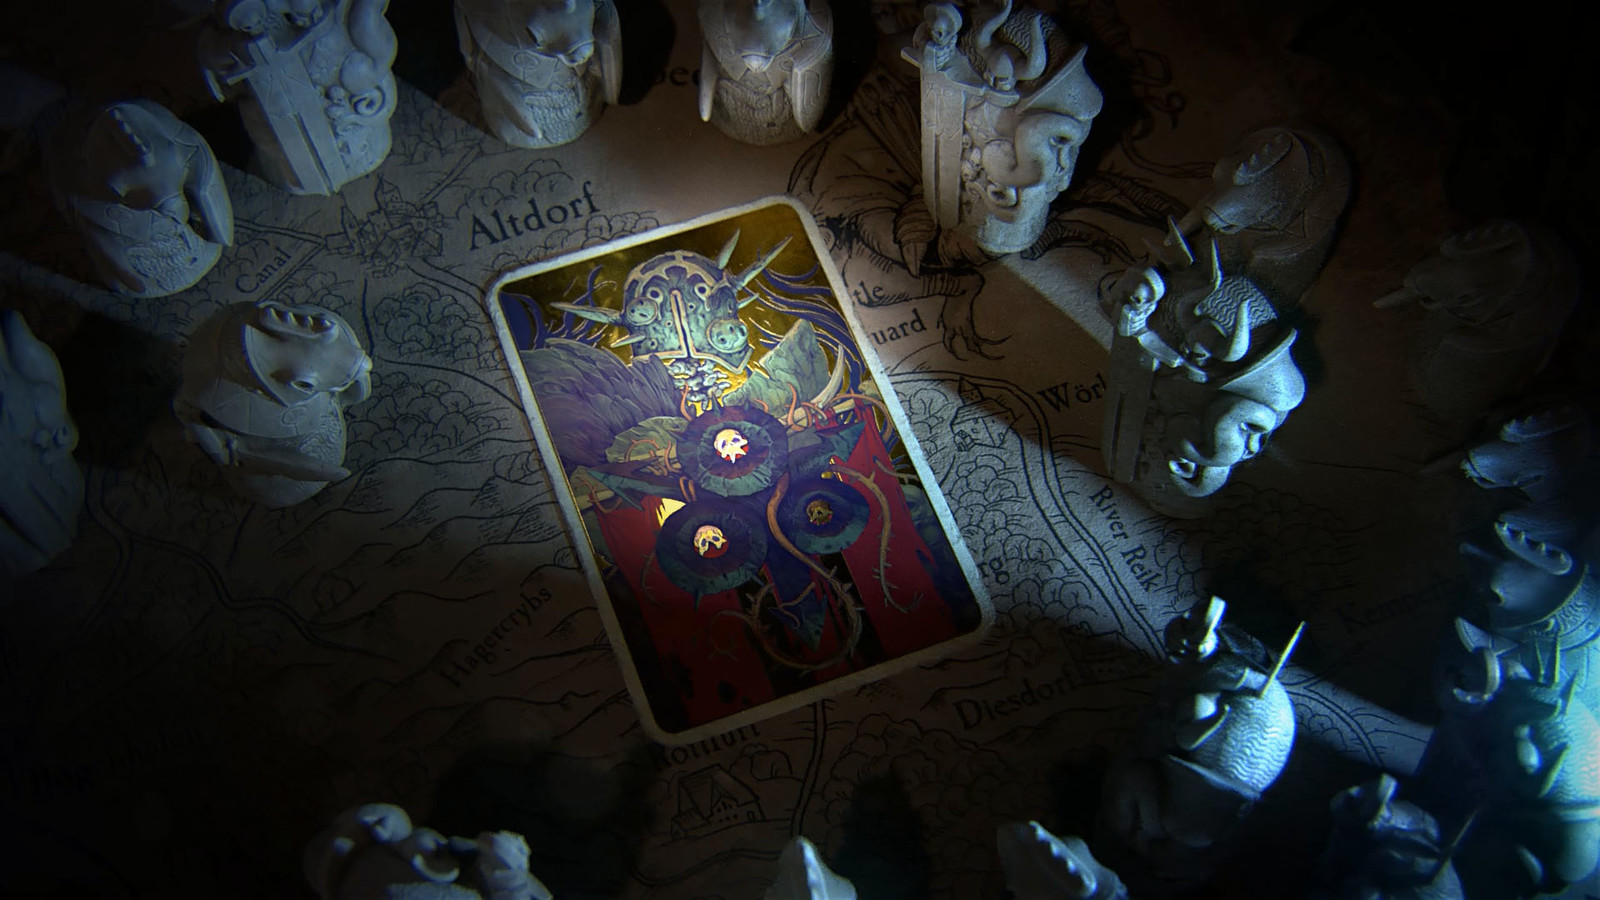 The Tarot combines illustration, metallic material pass and a card base with proper wear and tear.